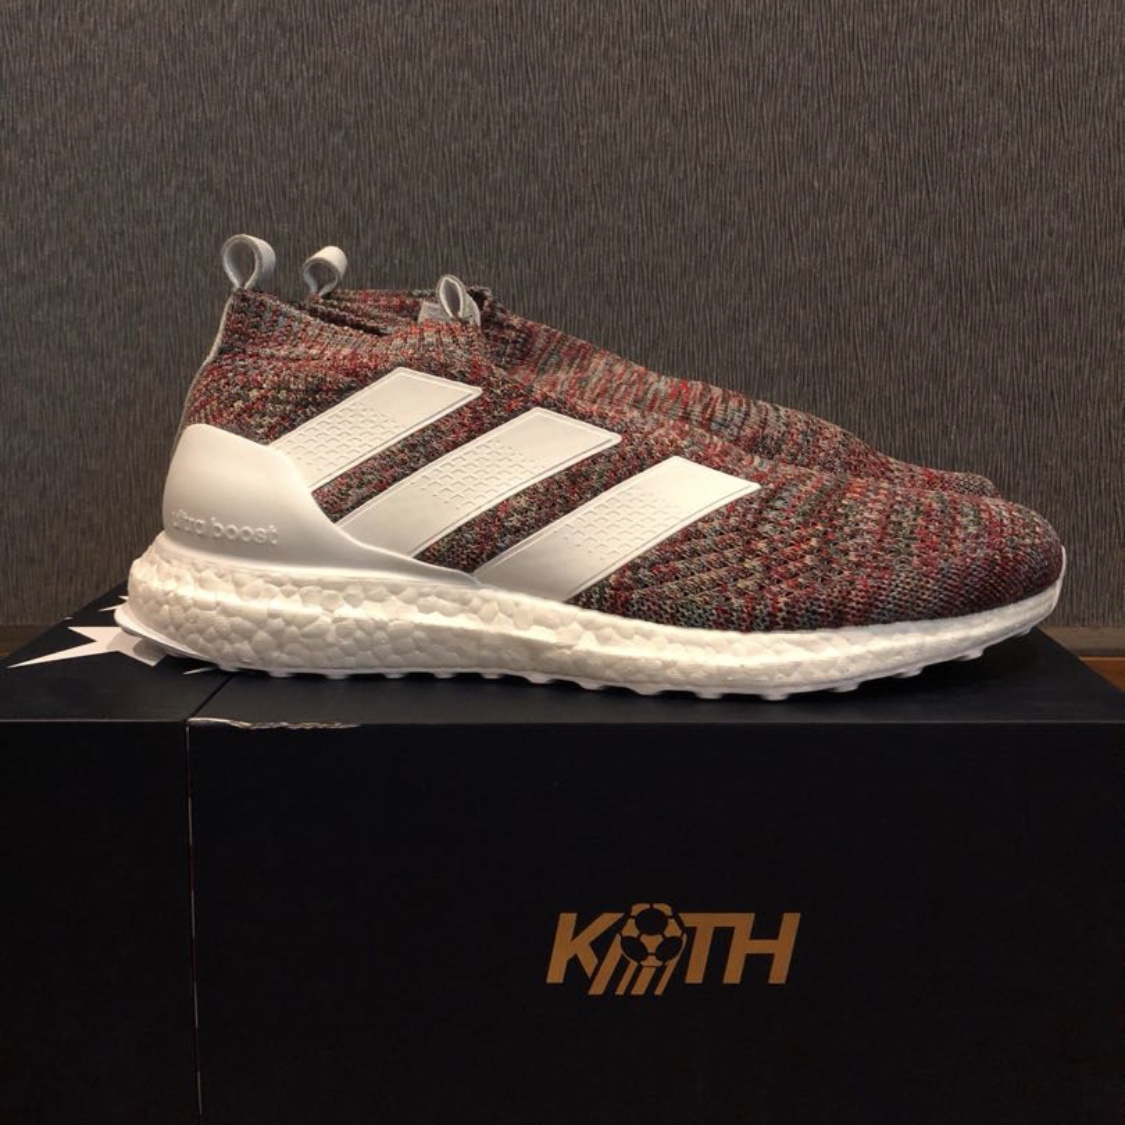 adidas A16+ Ultraboost Soccer Shoes Sneakers NWT